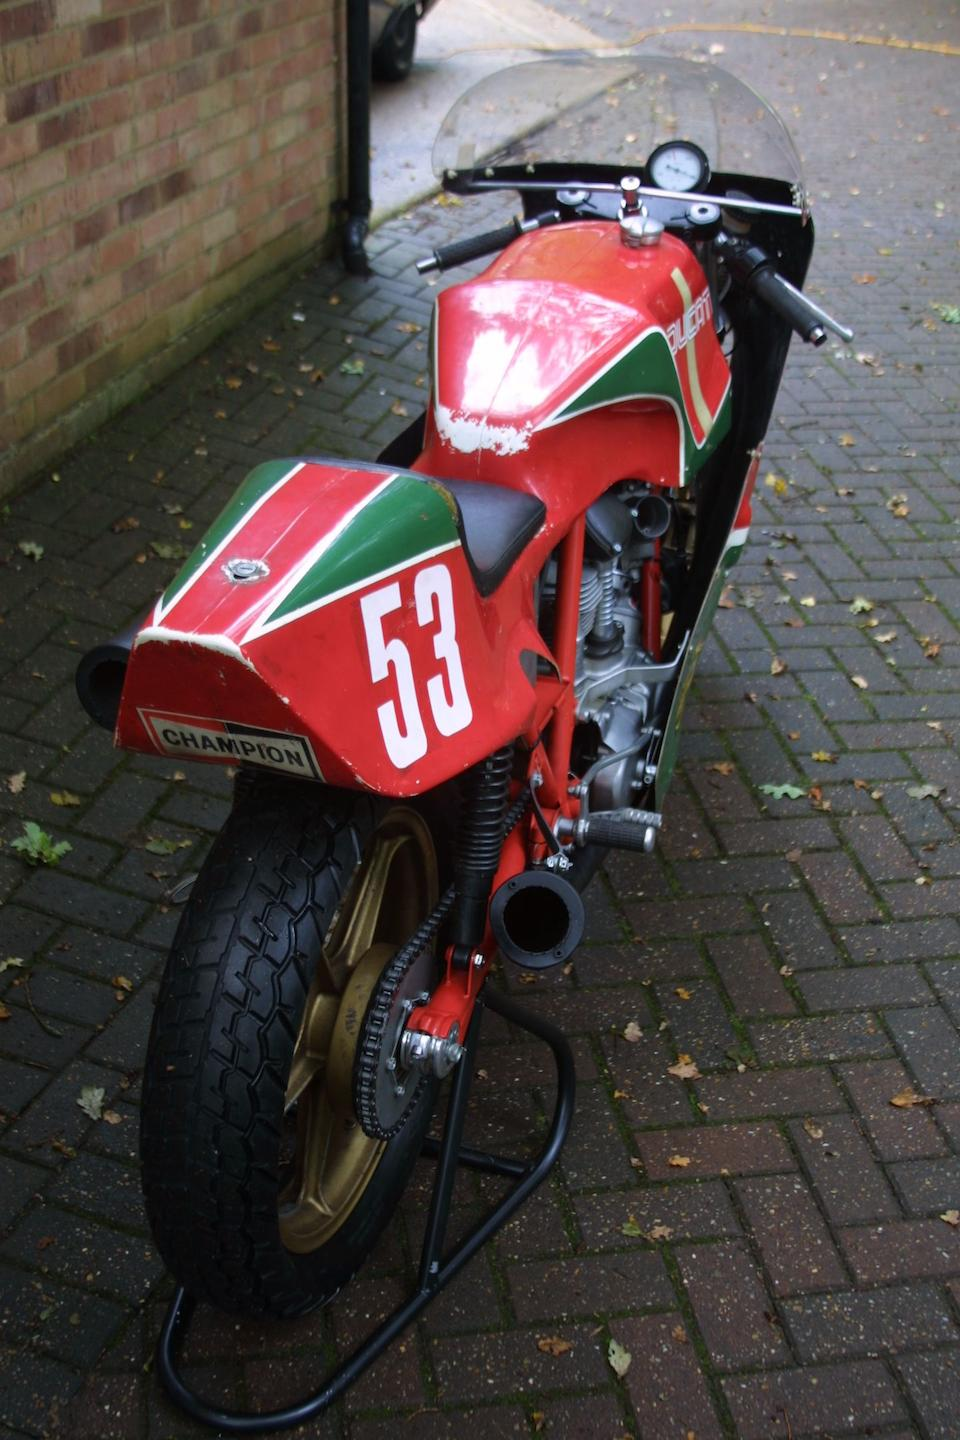 The ex-works, NCR, Sports Motor Cycles, Roger Nicholls, Isle of Man TT Formula 1,1973 Ducati 905cc Production Racing Motorcycle Frame no. 014